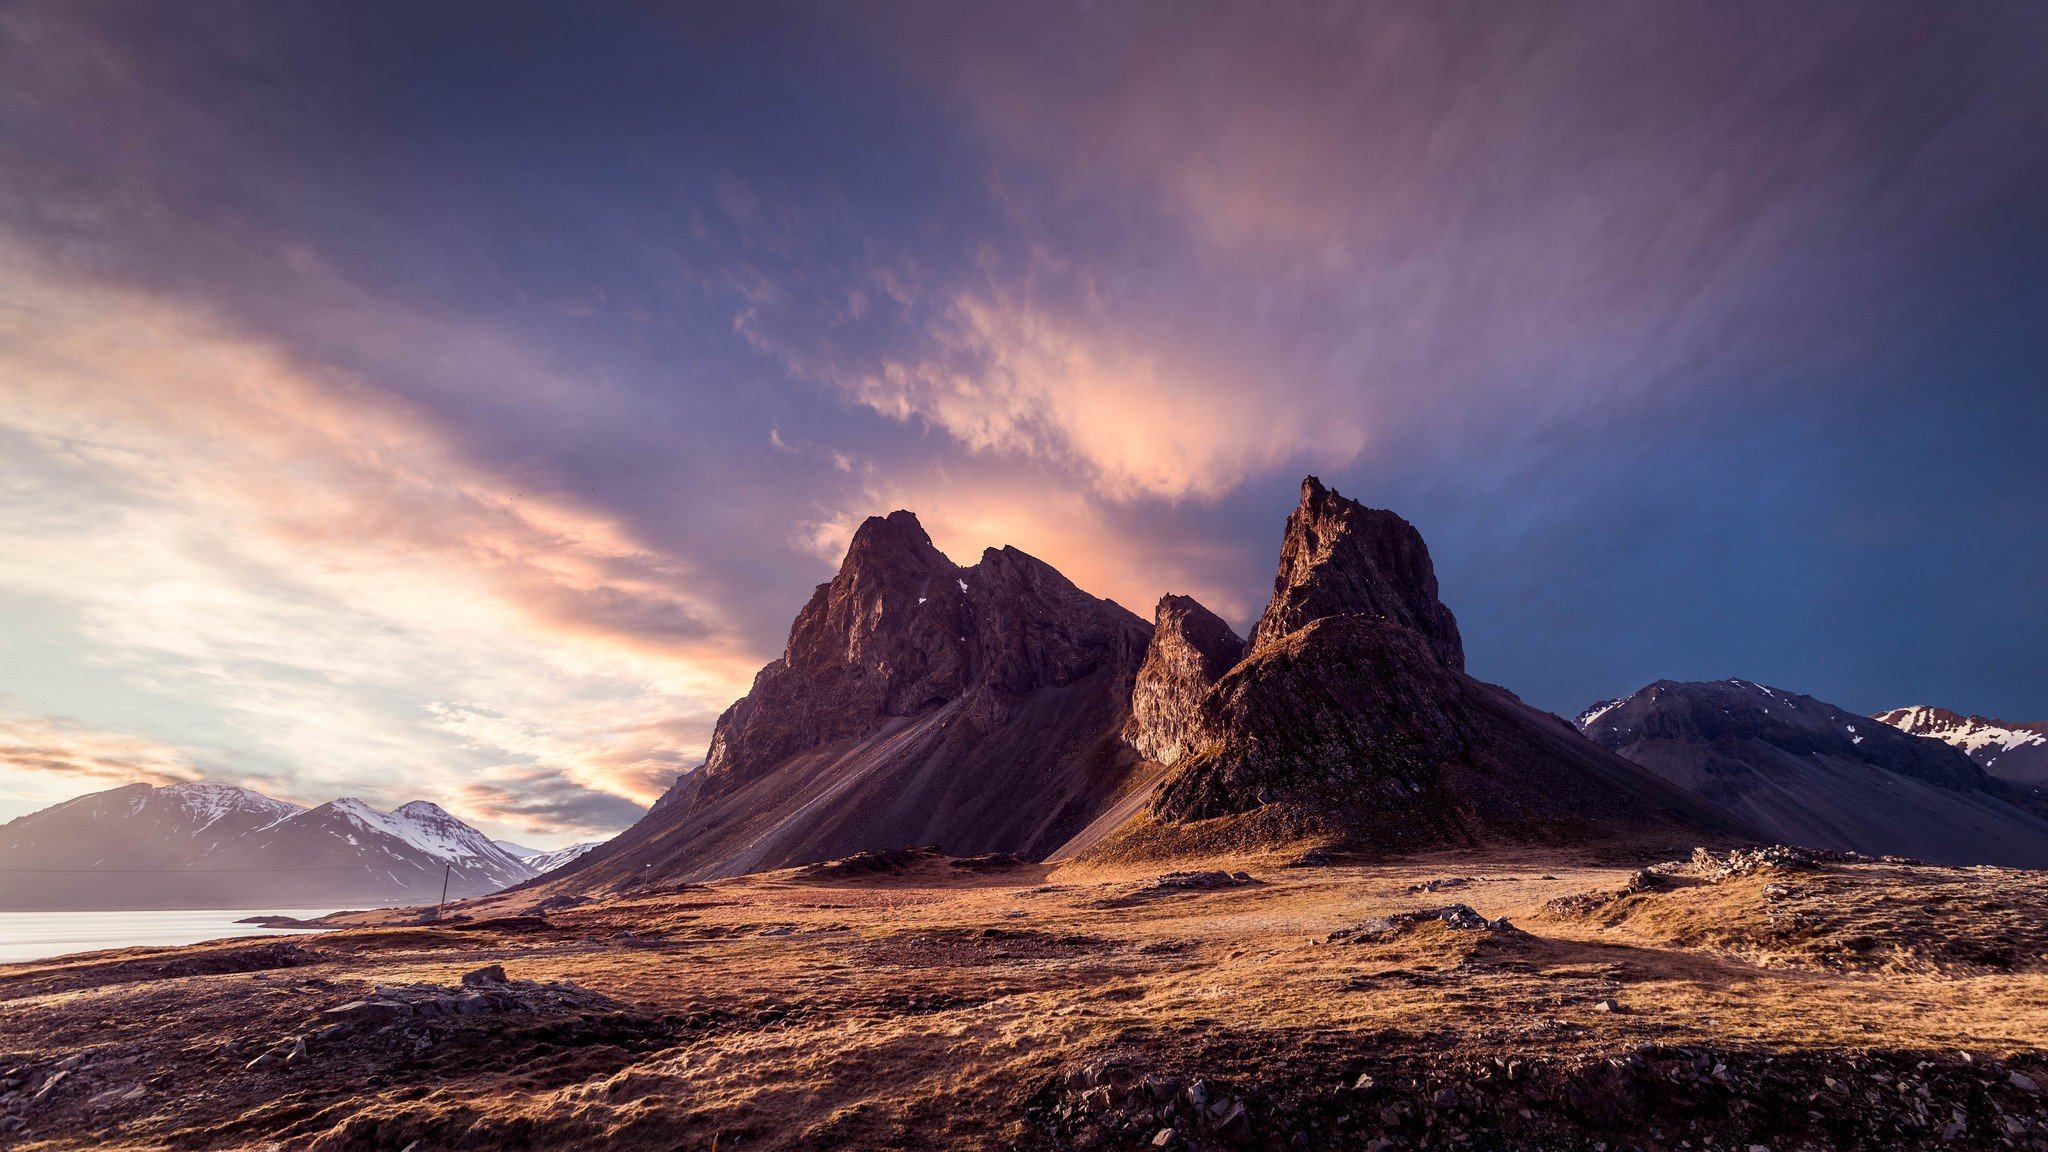 Iceland, Mountains, Sky, Clouds, Snowy peak, Nature Wallpaper